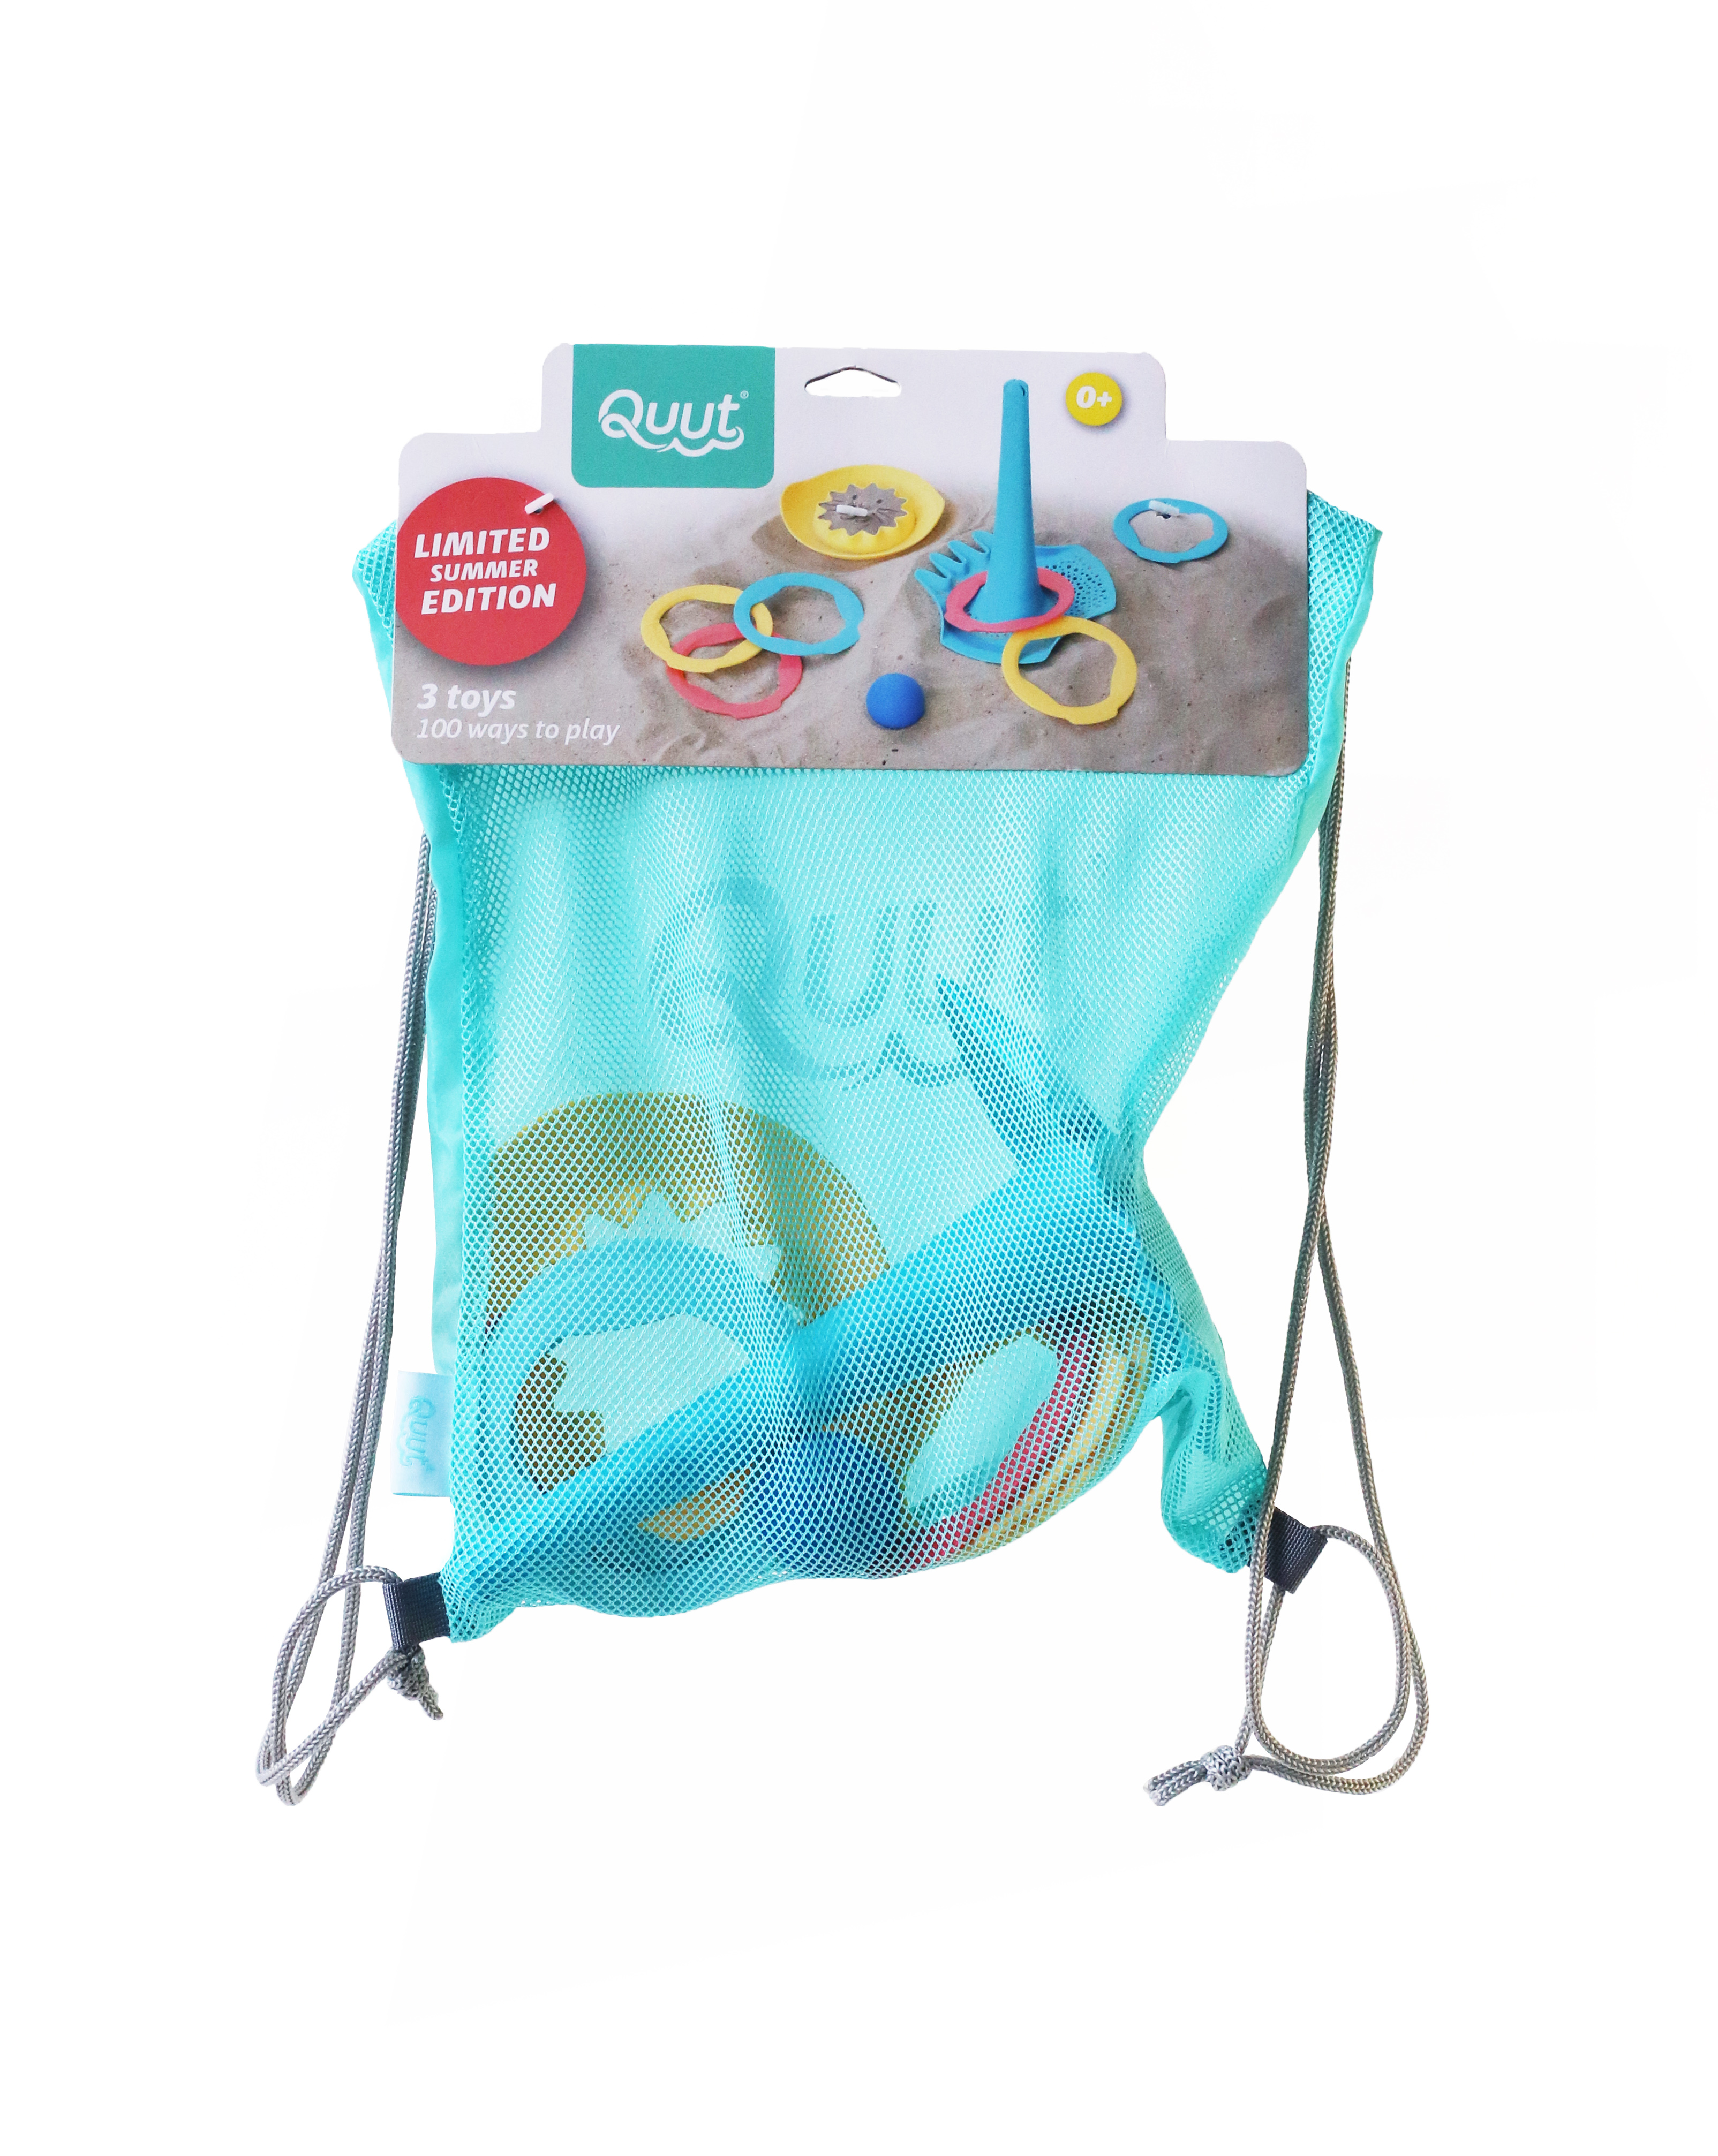 Quut - Beach Play Set with Triplet